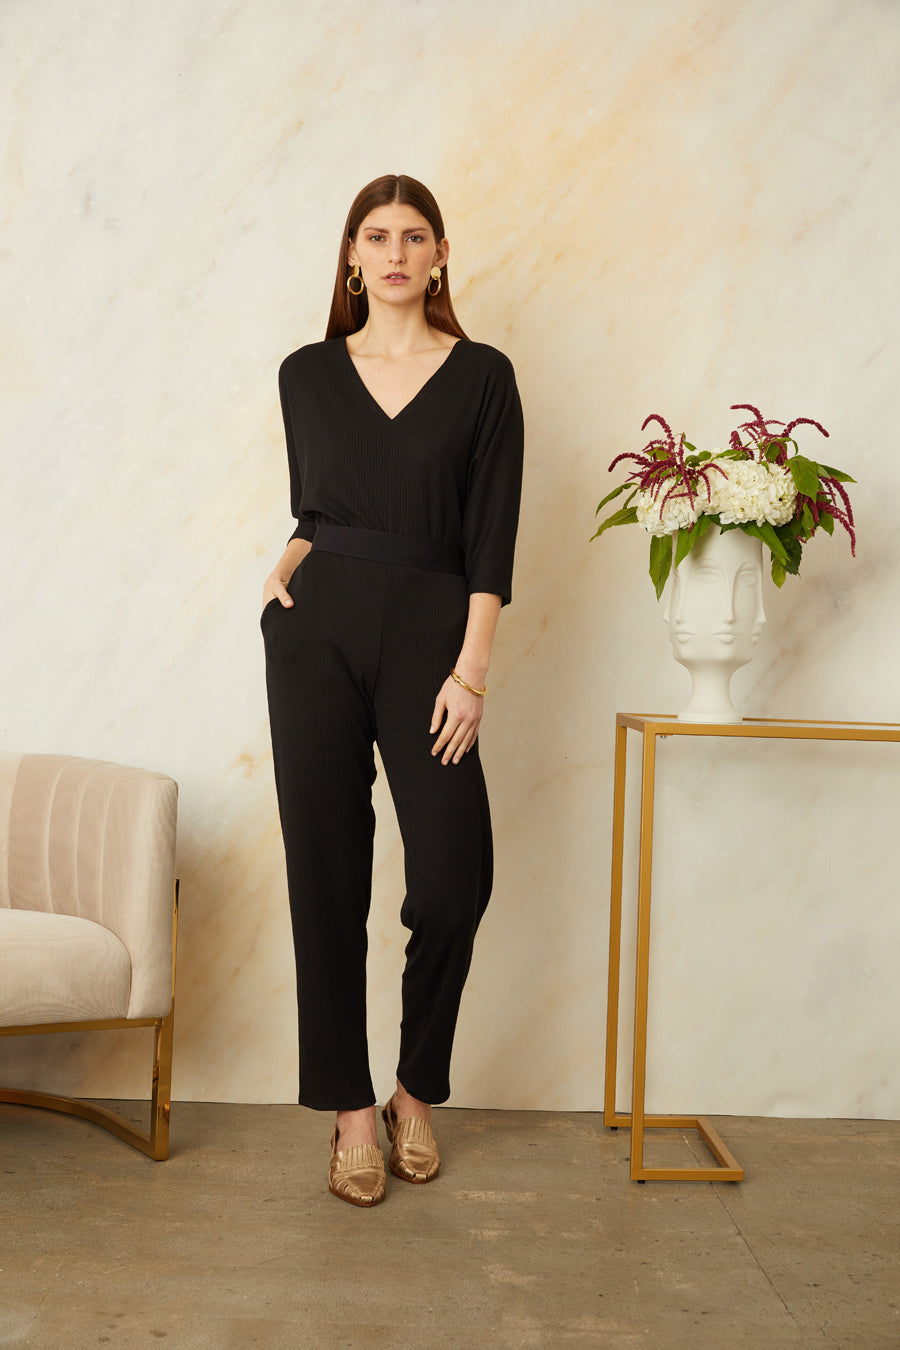 The Wendy Jumpsuit - How To Wear It